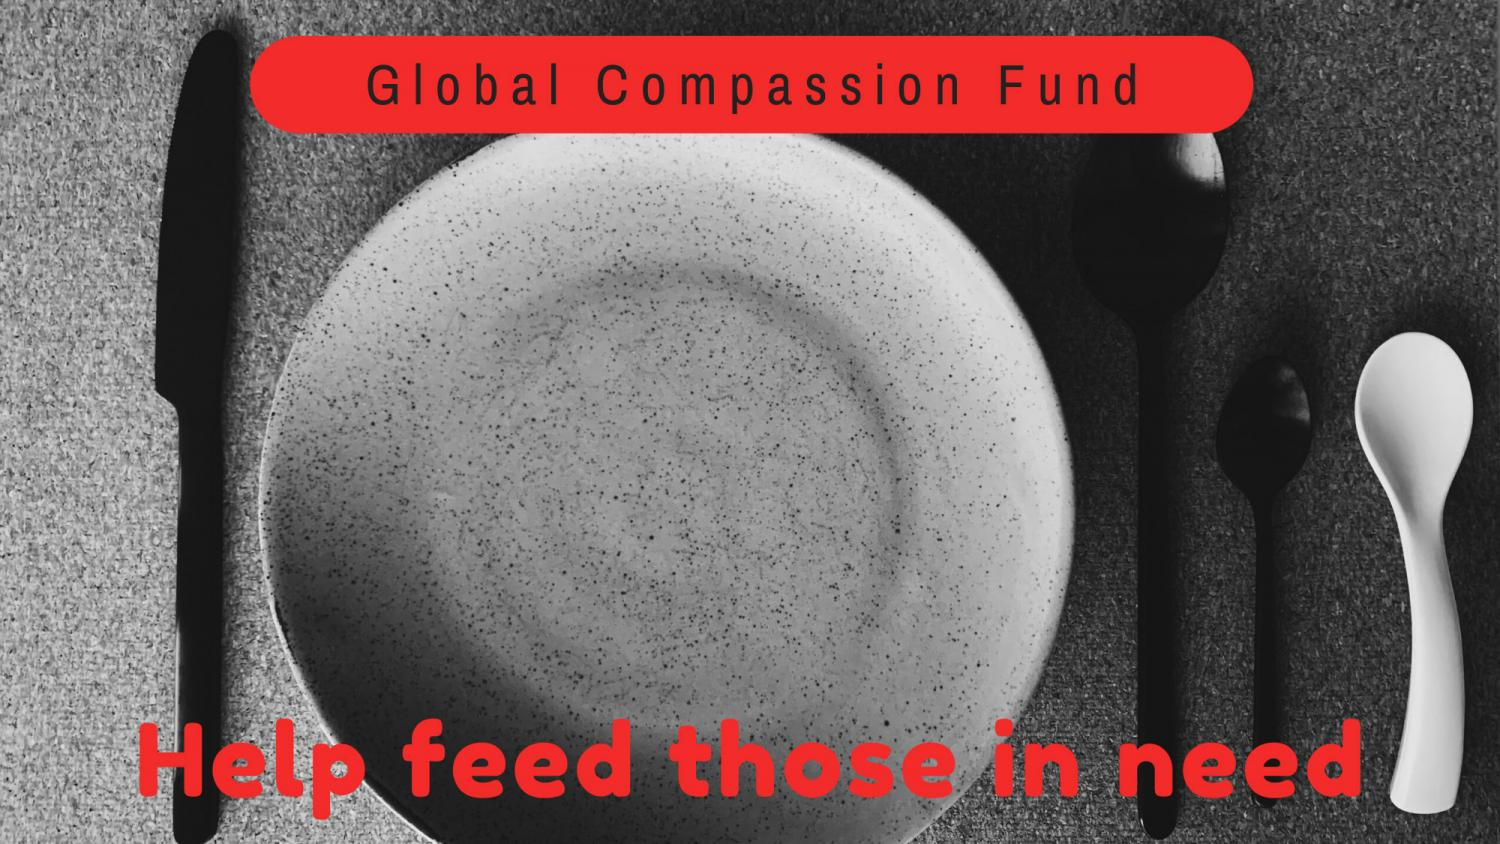 Global Compassion Fund